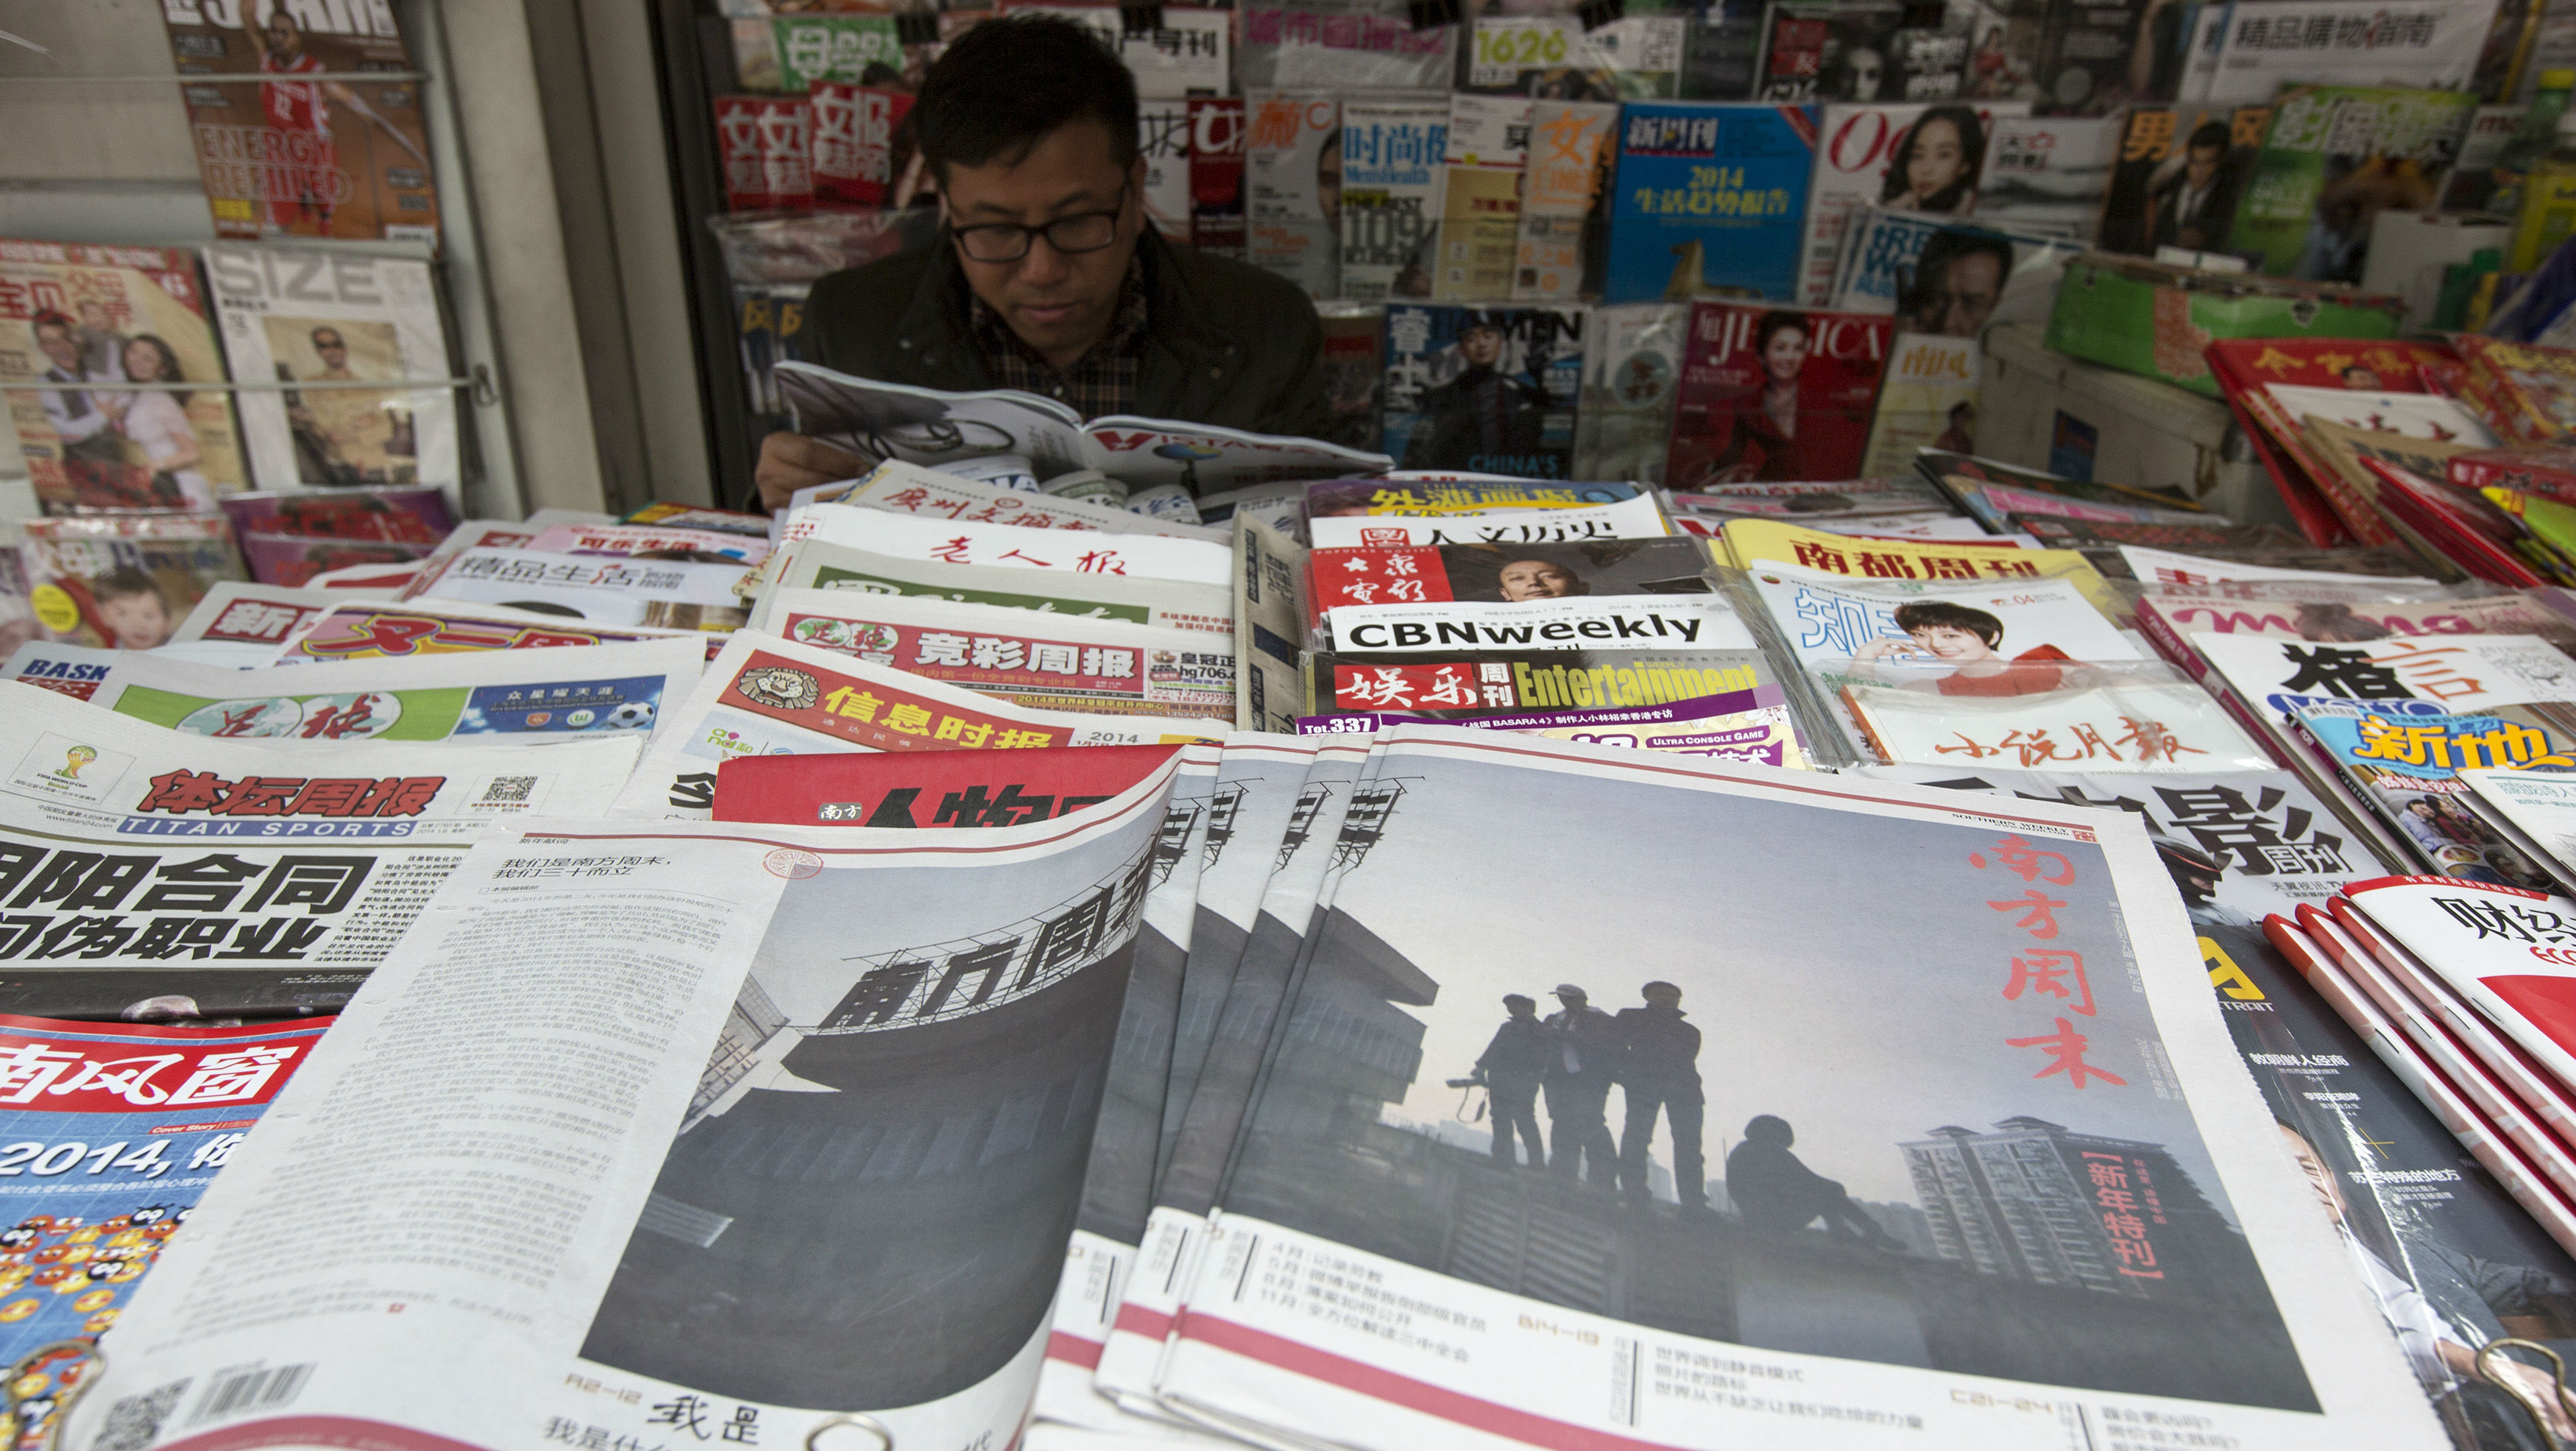 Southern Weekly newspaper copies are left on display at a newsstand in the southern Chinese city of Guangzhou January 7, 2014. Chinese authorities have detained some activists in the southern city of Guangzhou to try to derail a protest planned for Tuesday to commemorate a strike by reporters at Southern Weekly, several activists said. REUTERS/Tyrone Siu (CHINA - Tags: POLITICS MEDIA CIVIL UNREST)